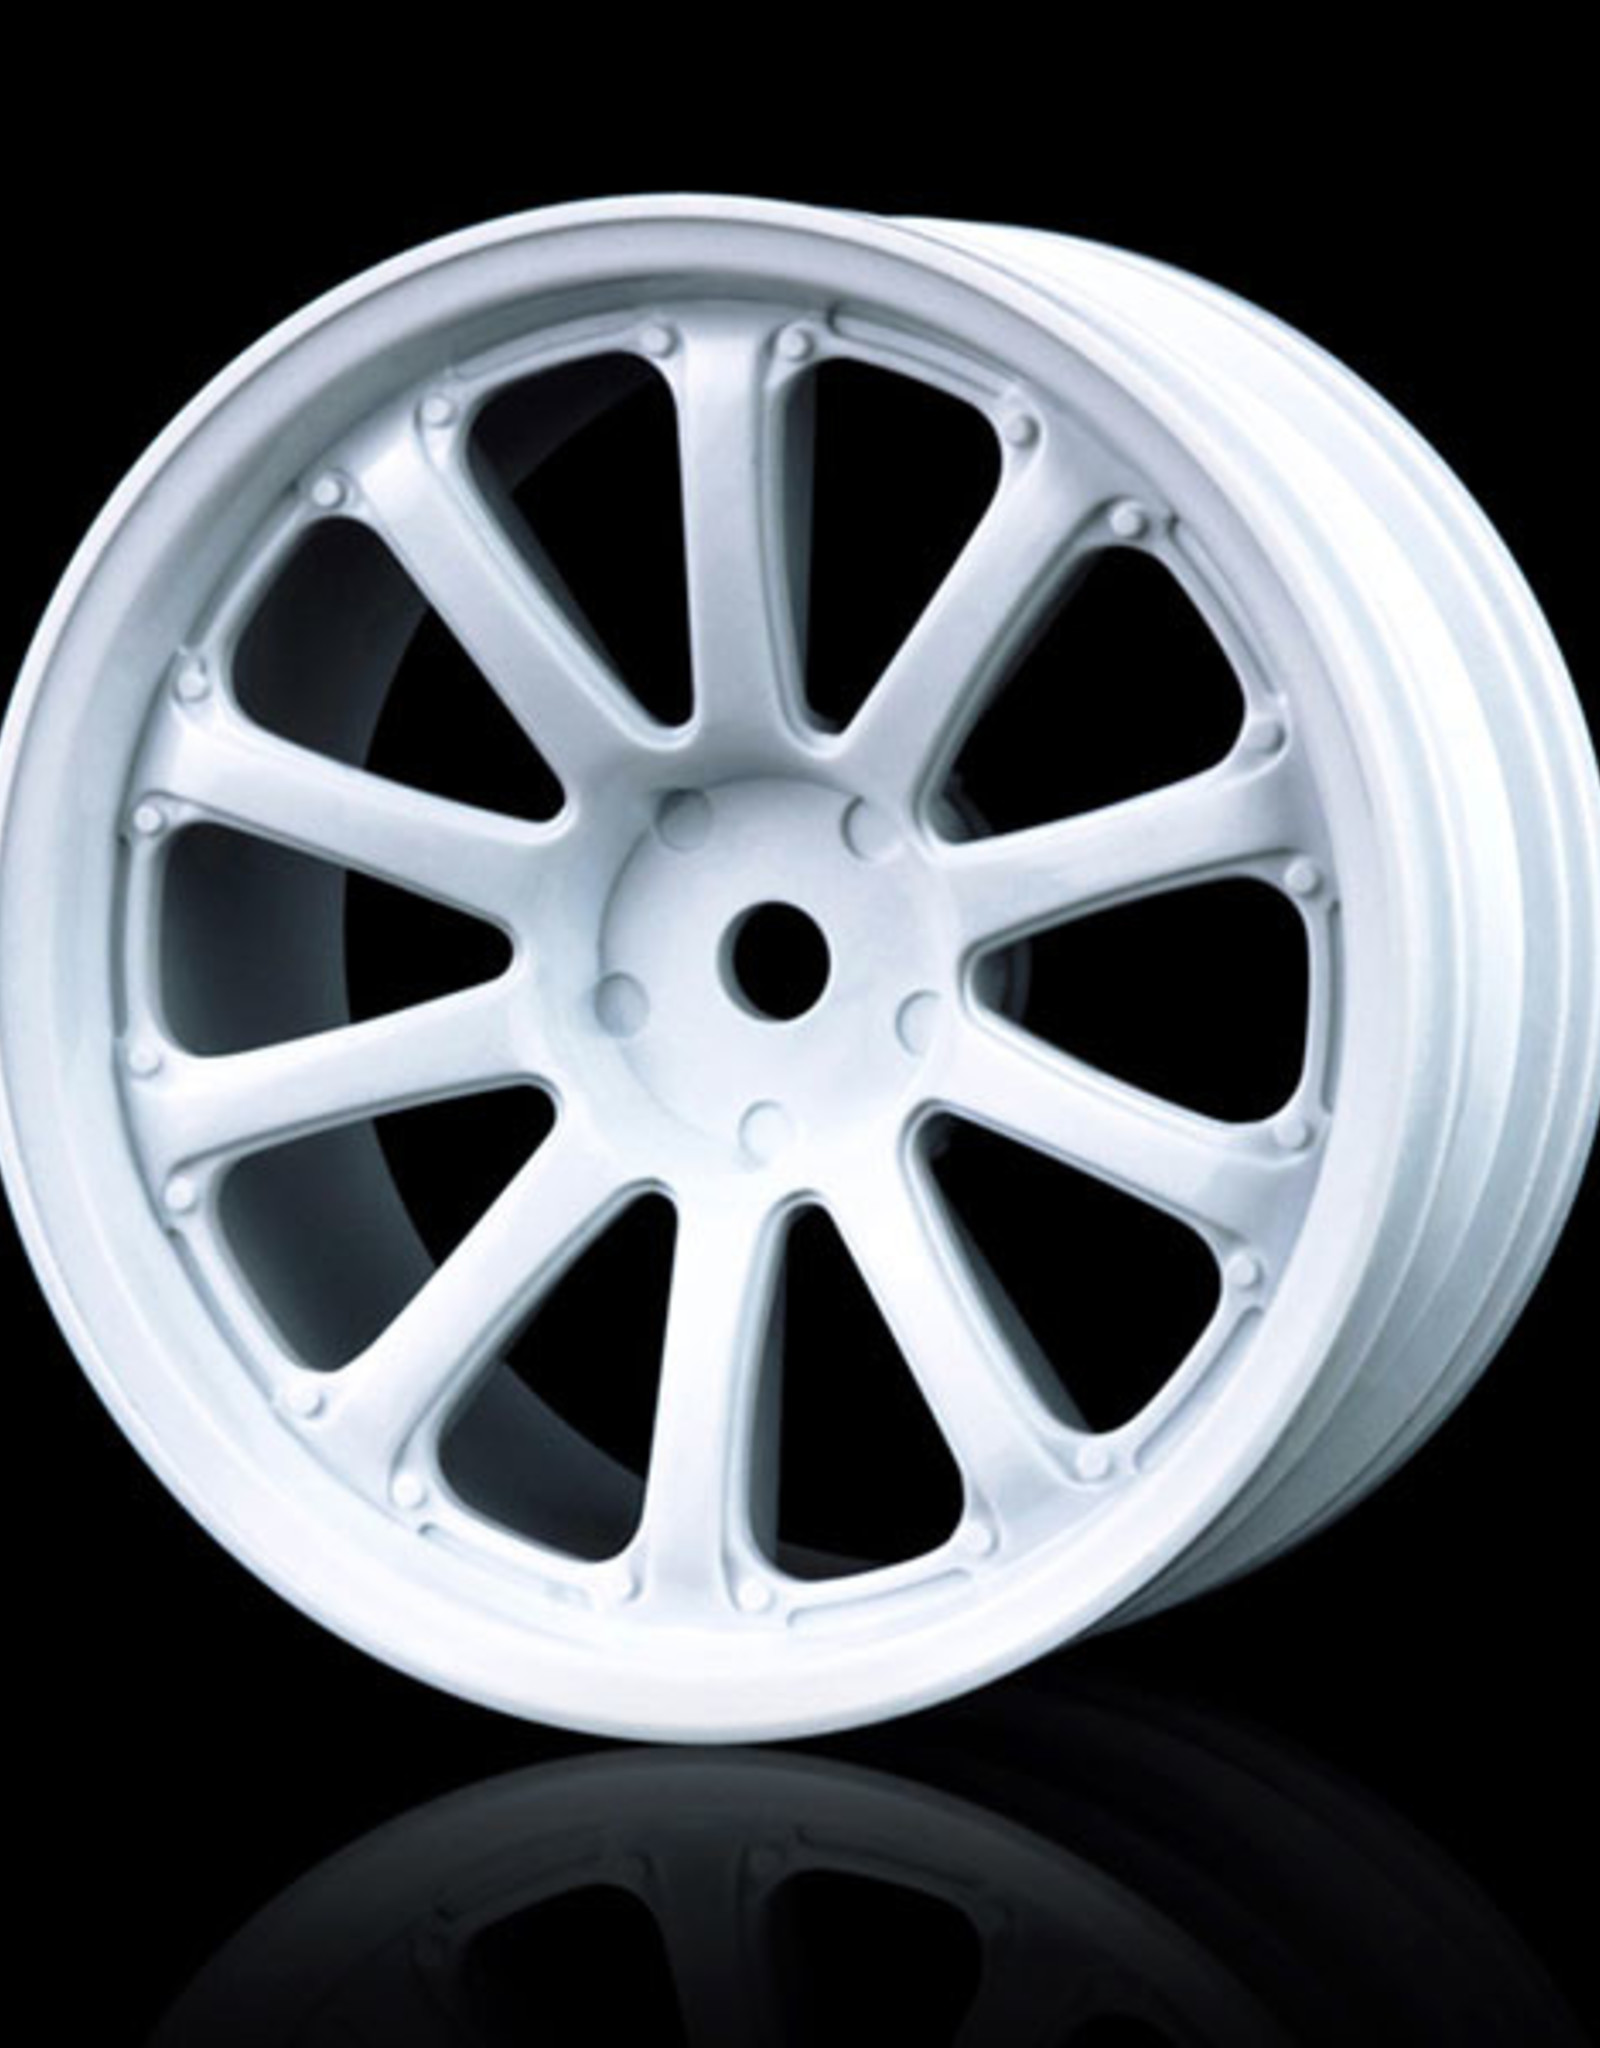 MST 77SV Wheel (4pcs) by MST White 5mm